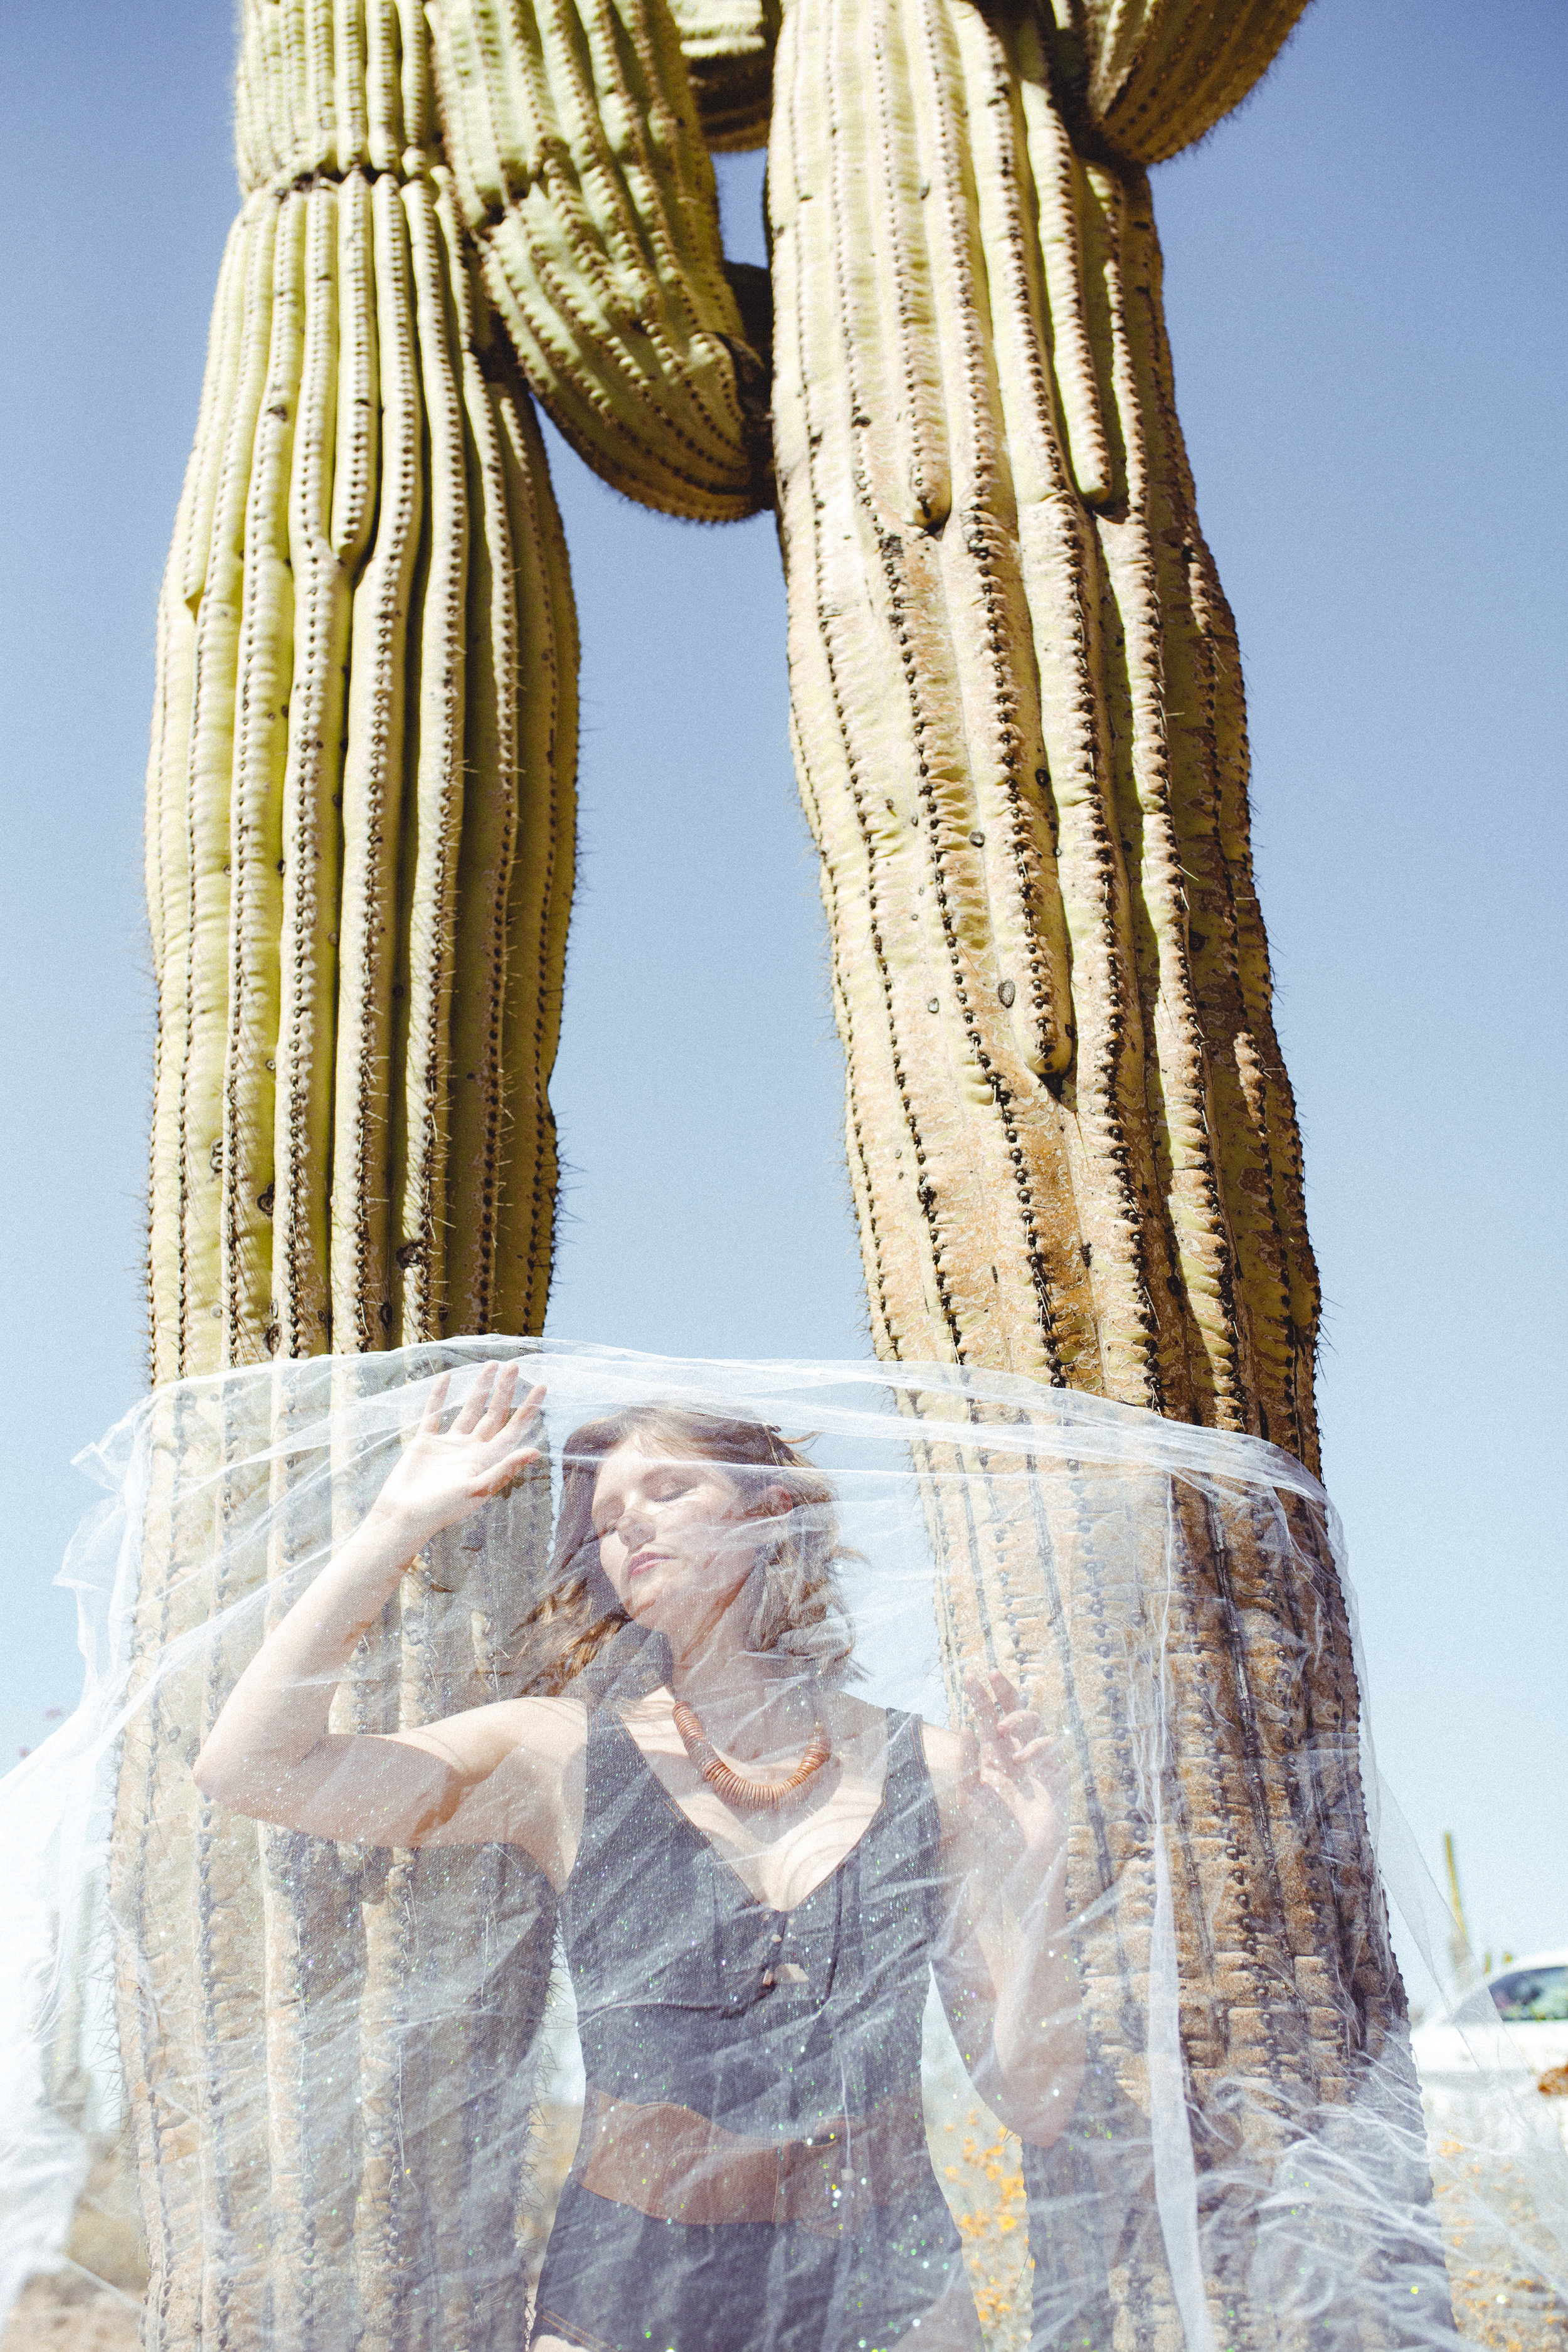 A Planet Called Earth - Saguaro National Park, ArizonaPhotos by: Shelly DuncanNecklace by: Odyssey and Oddities